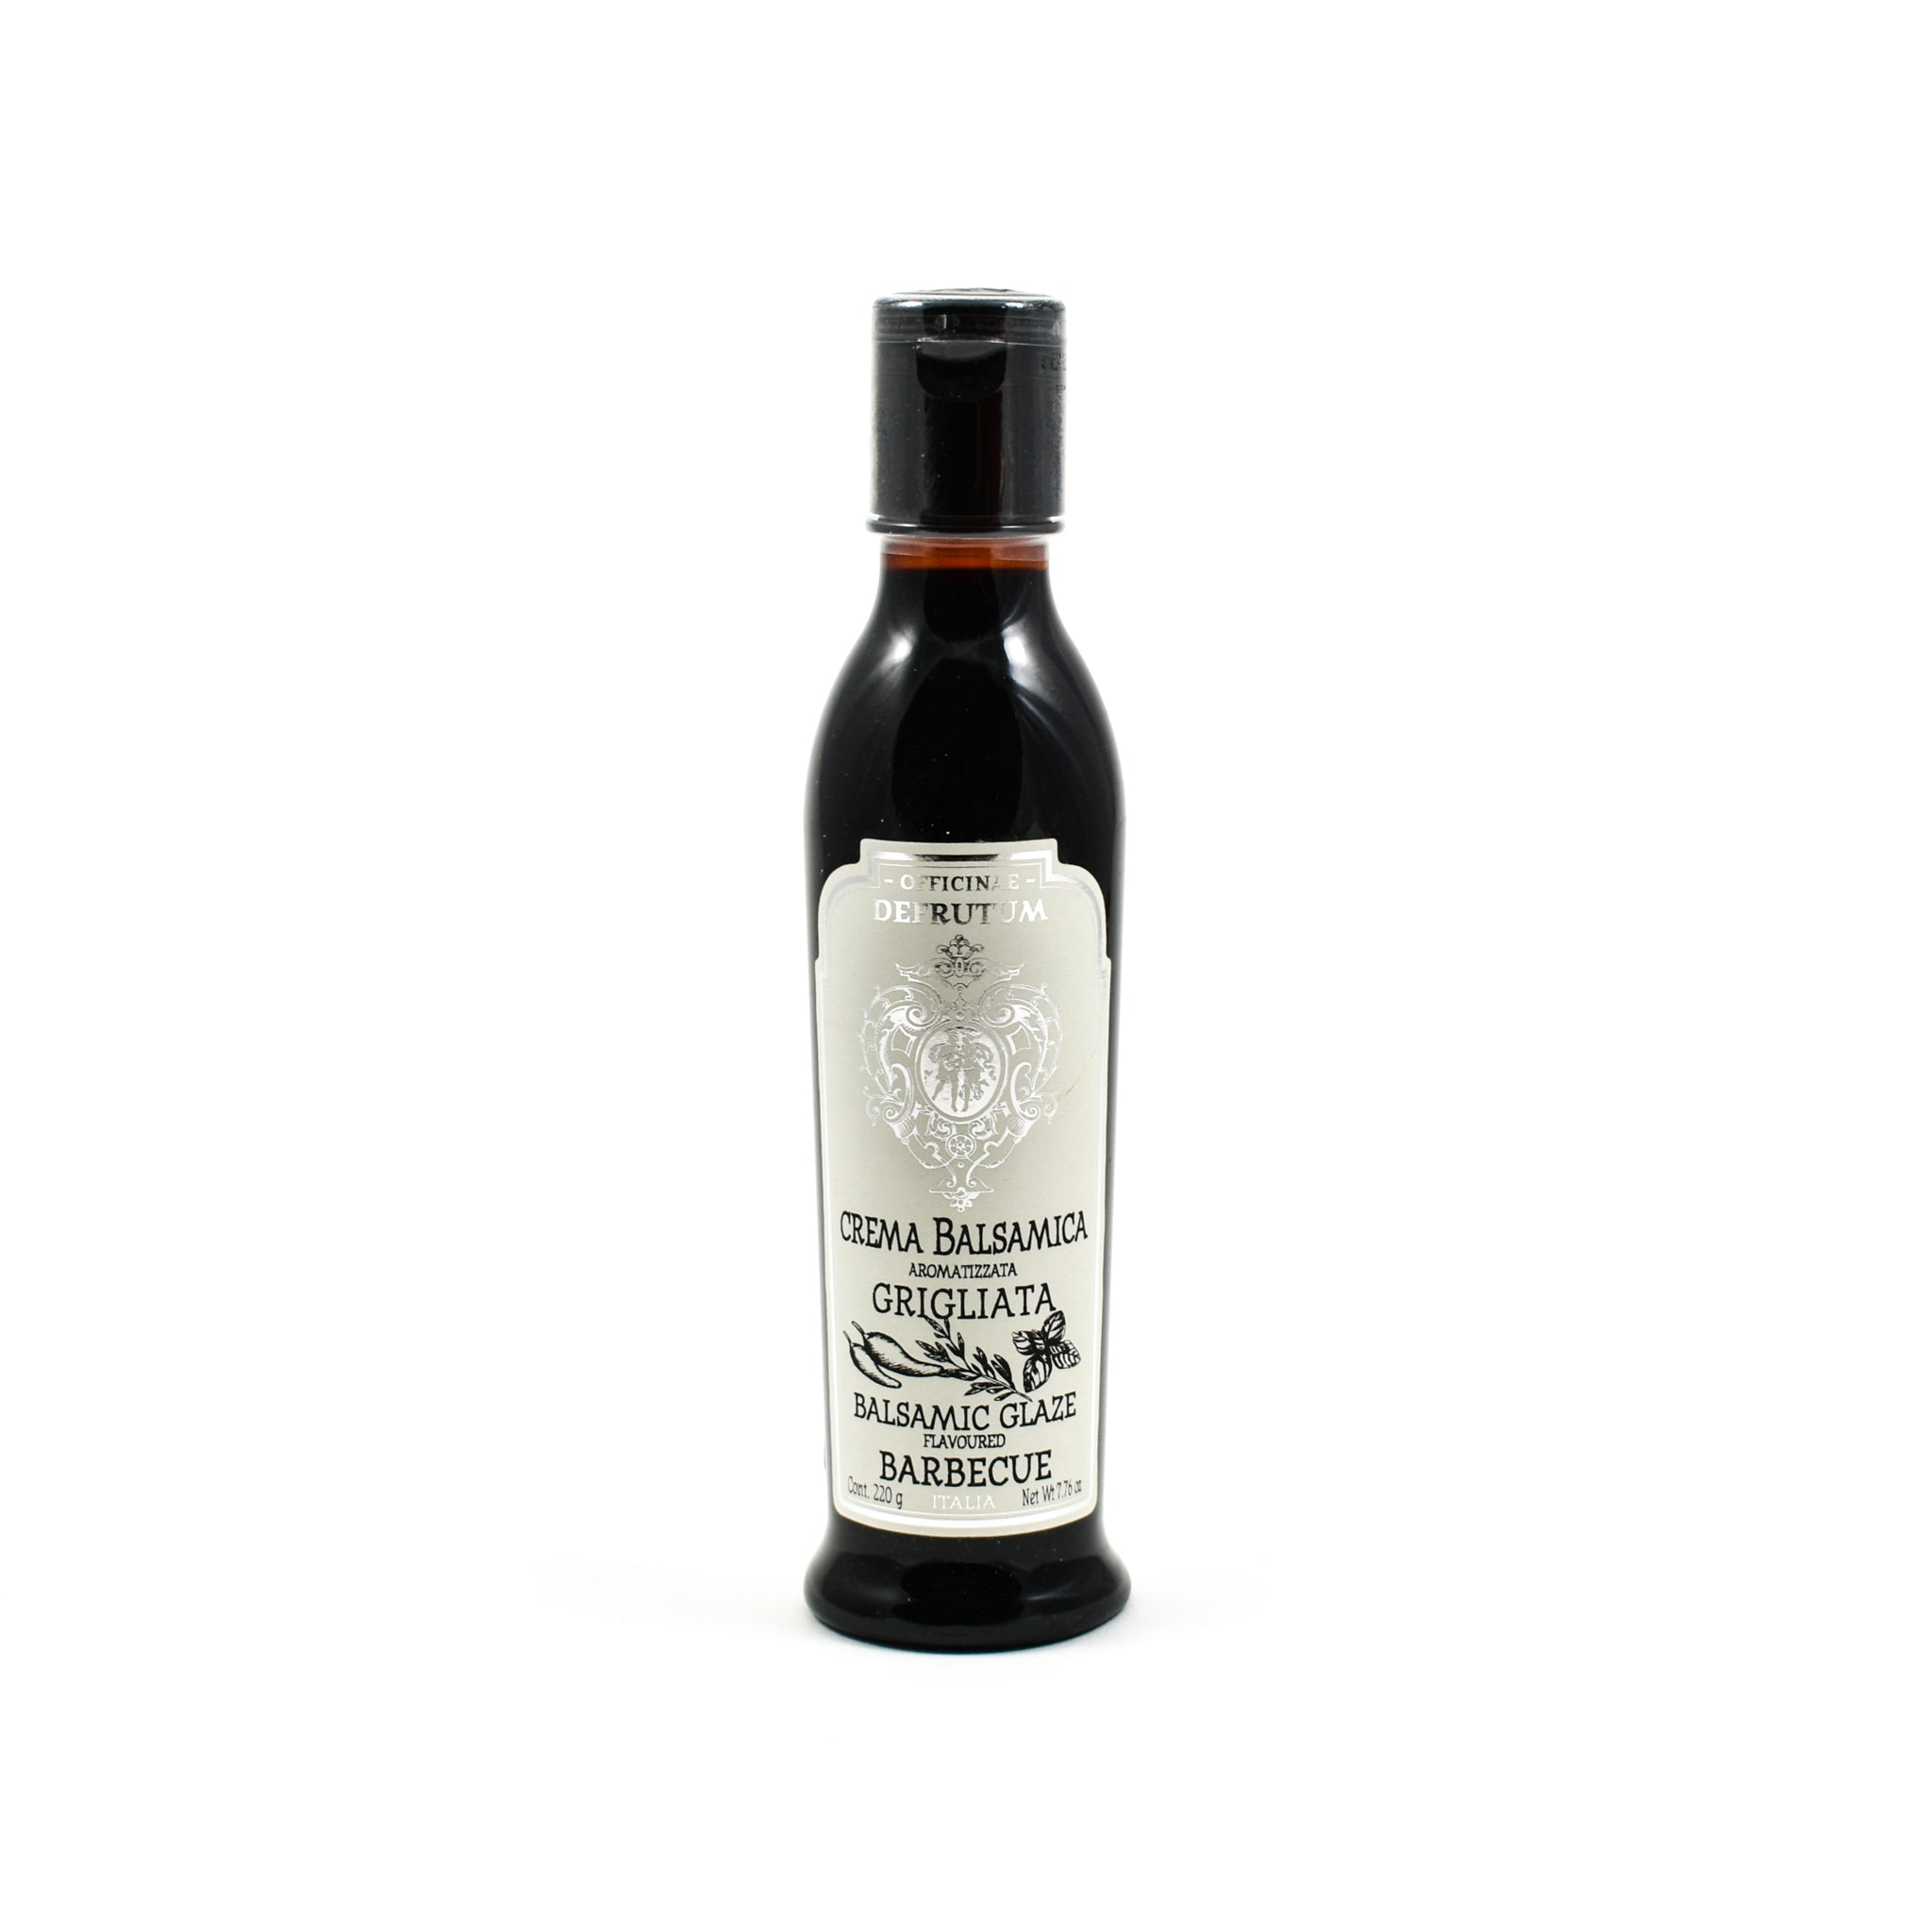 Defrutum BBQ Balsamic Glaze 220 g Ingredients Oils & Vinegars Italian Food